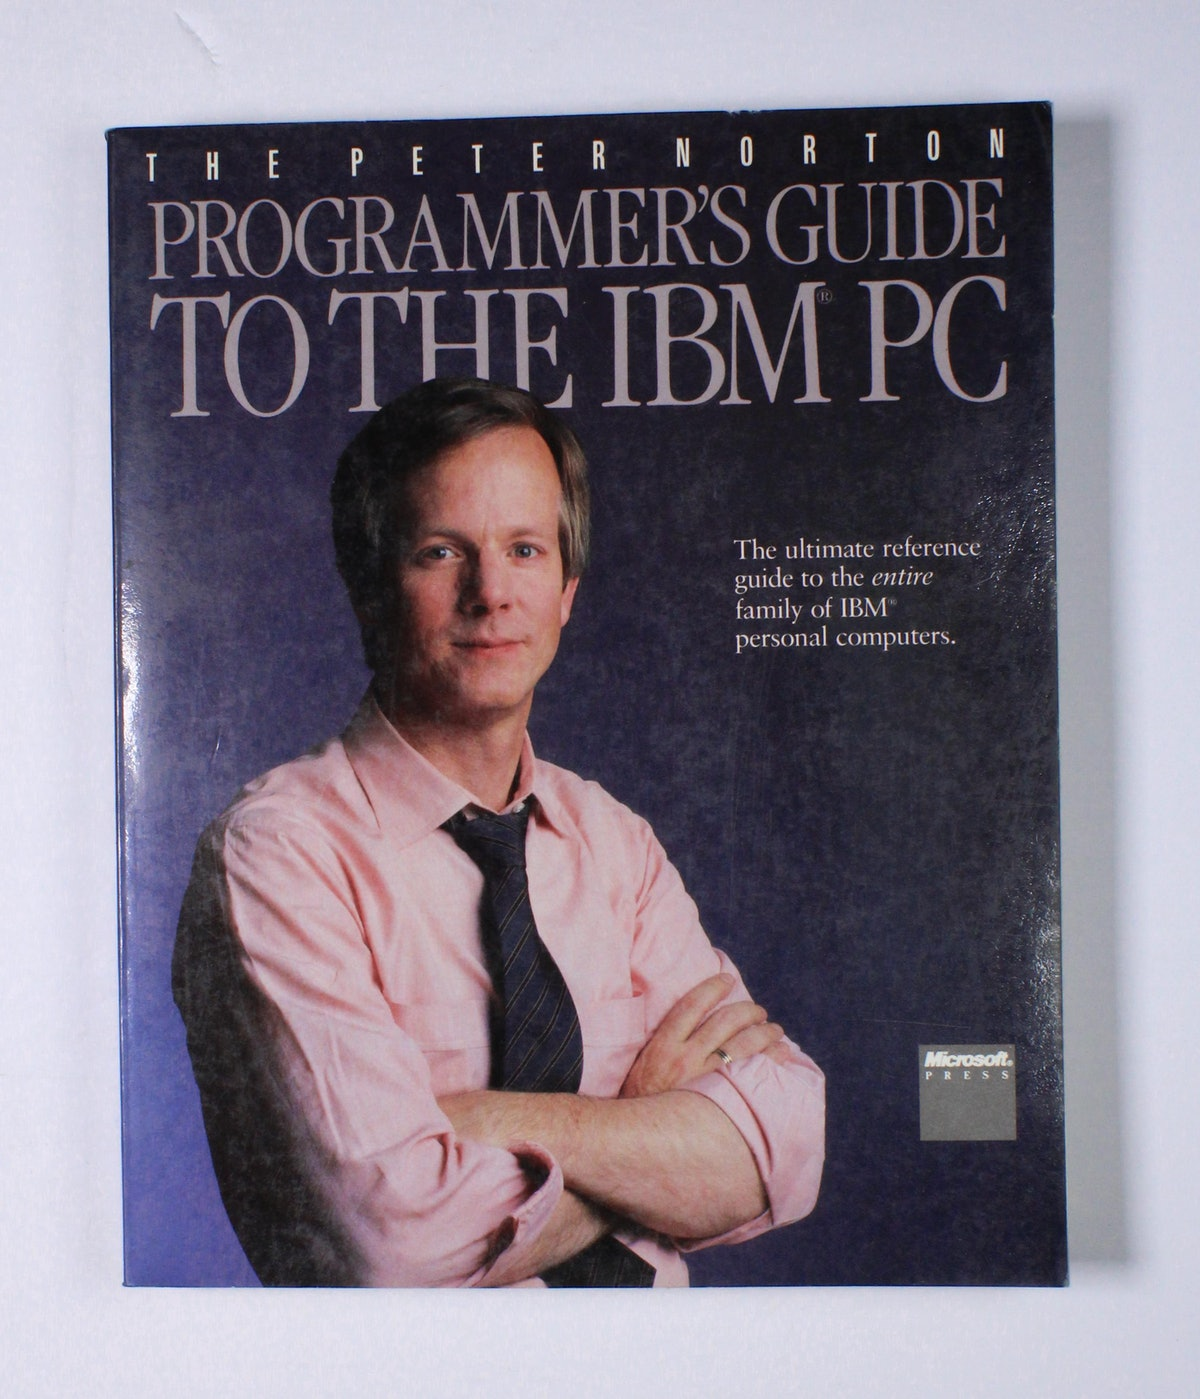 Programmer's Guide to the IBM PC